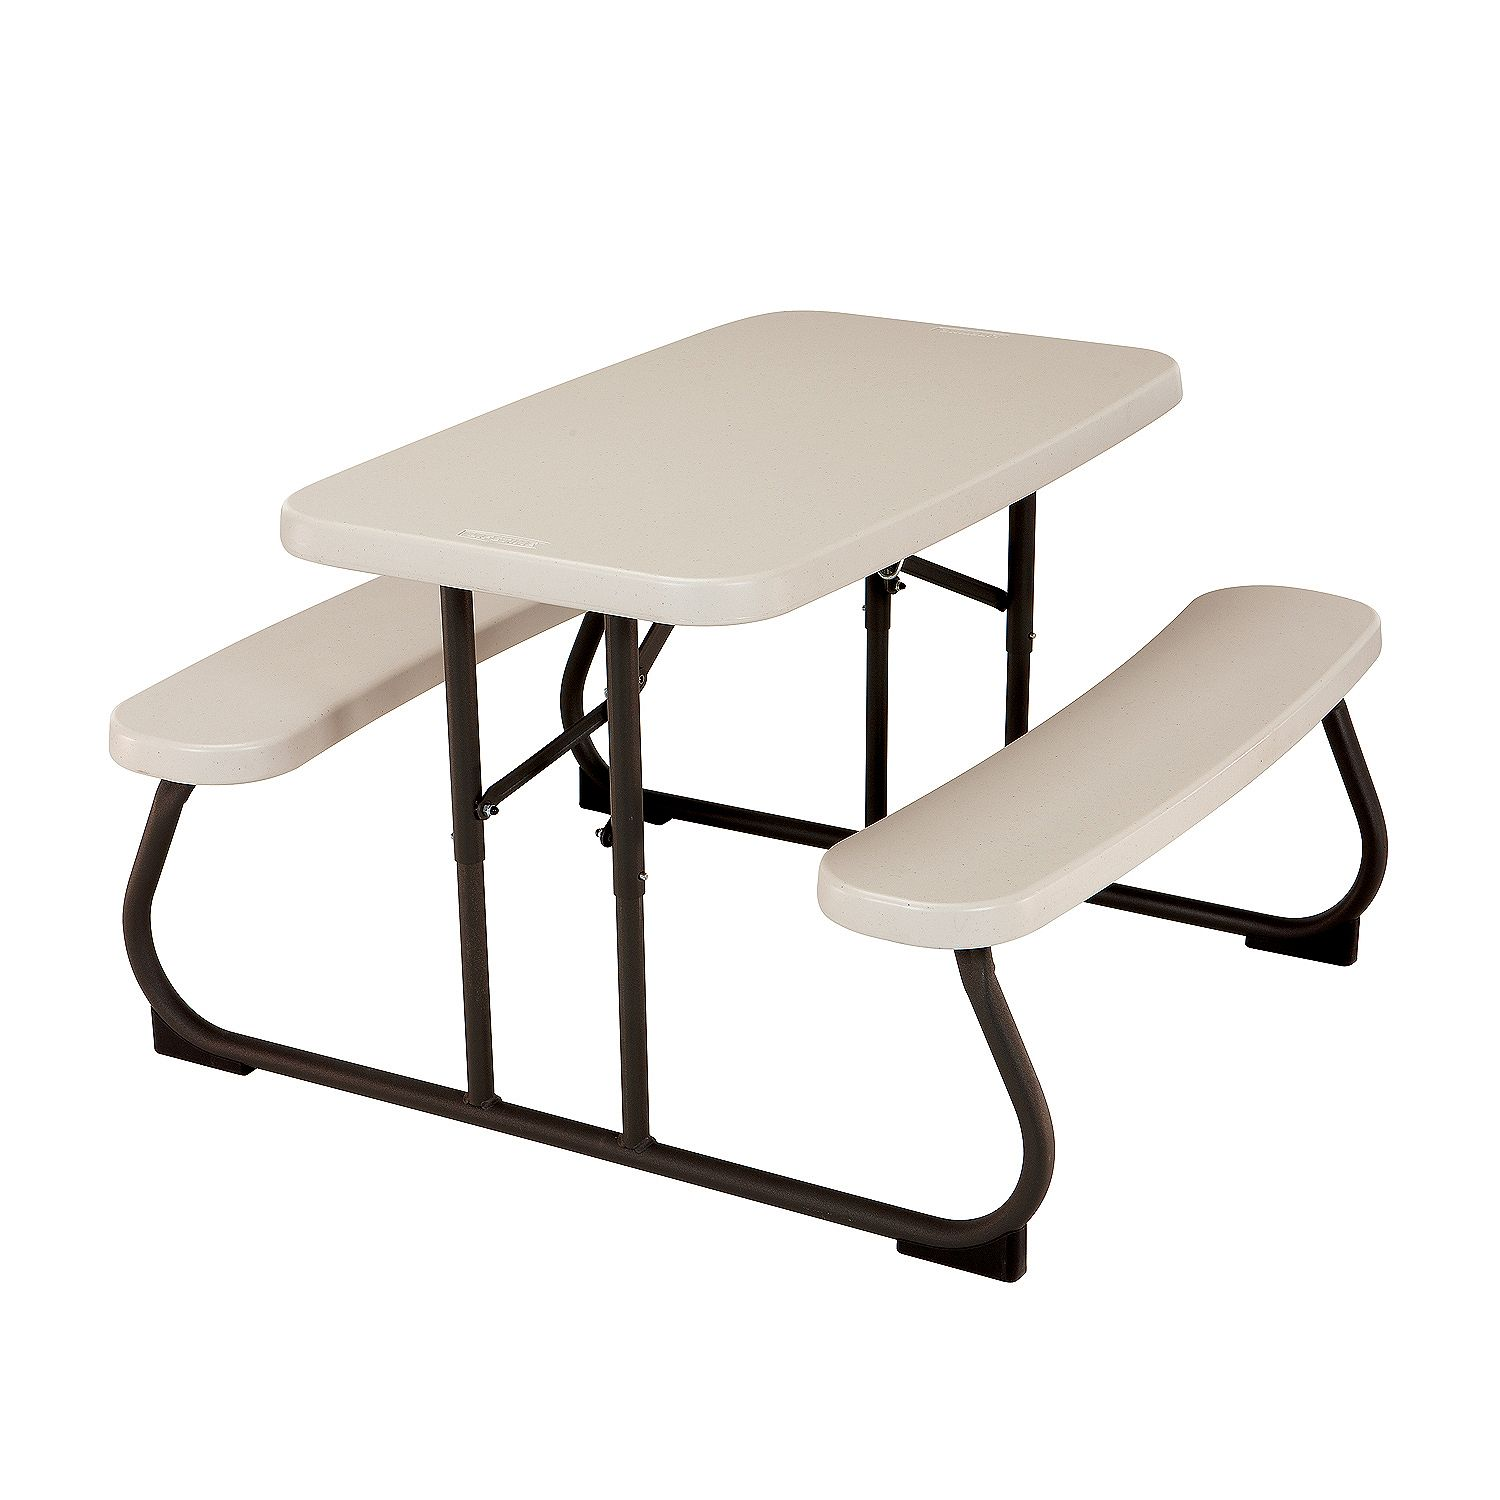 table chair rentals orlando oversized sleeper tables chairs tent fun party kids picnic